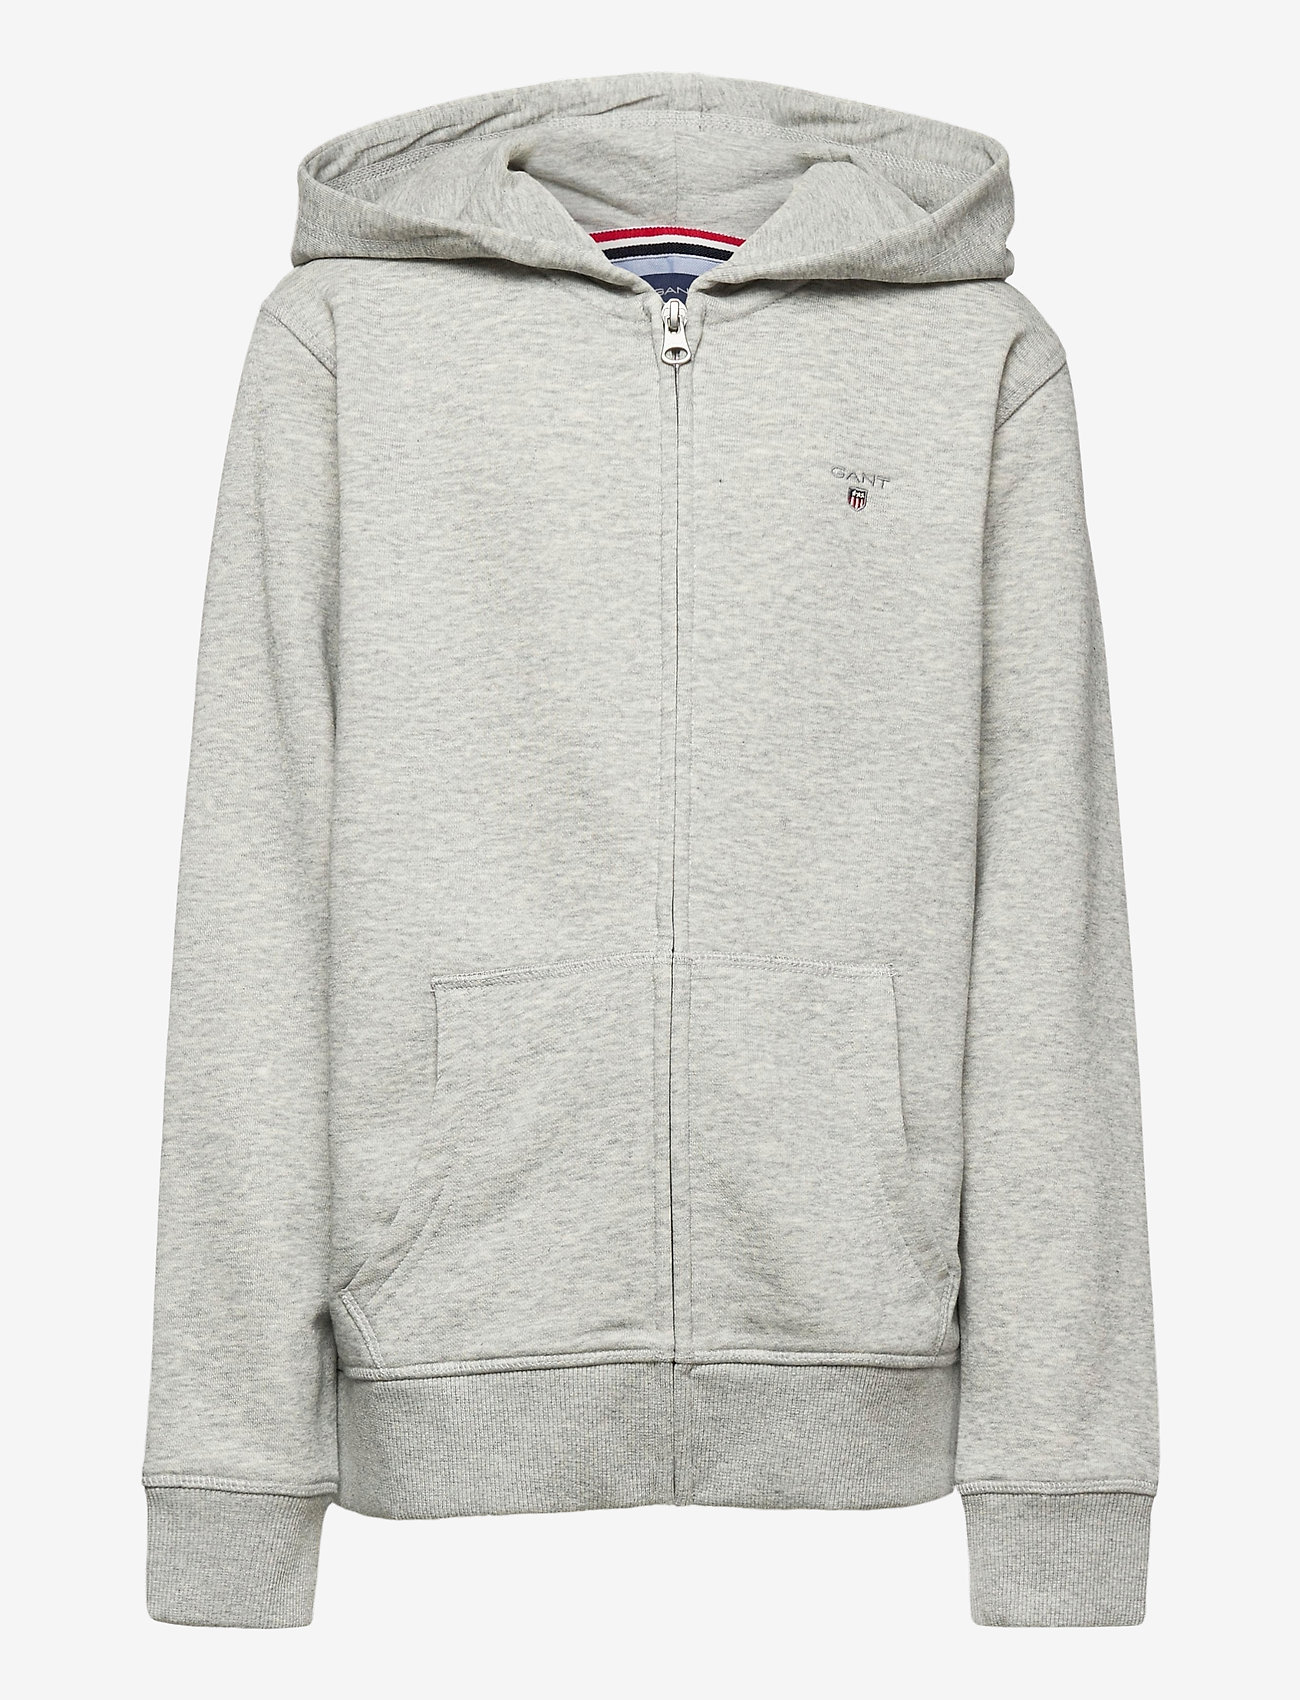 GANT - THE ORIGINAL FULL ZIP SWEAT HOODIE - hættetrøjer - light grey melange - 0